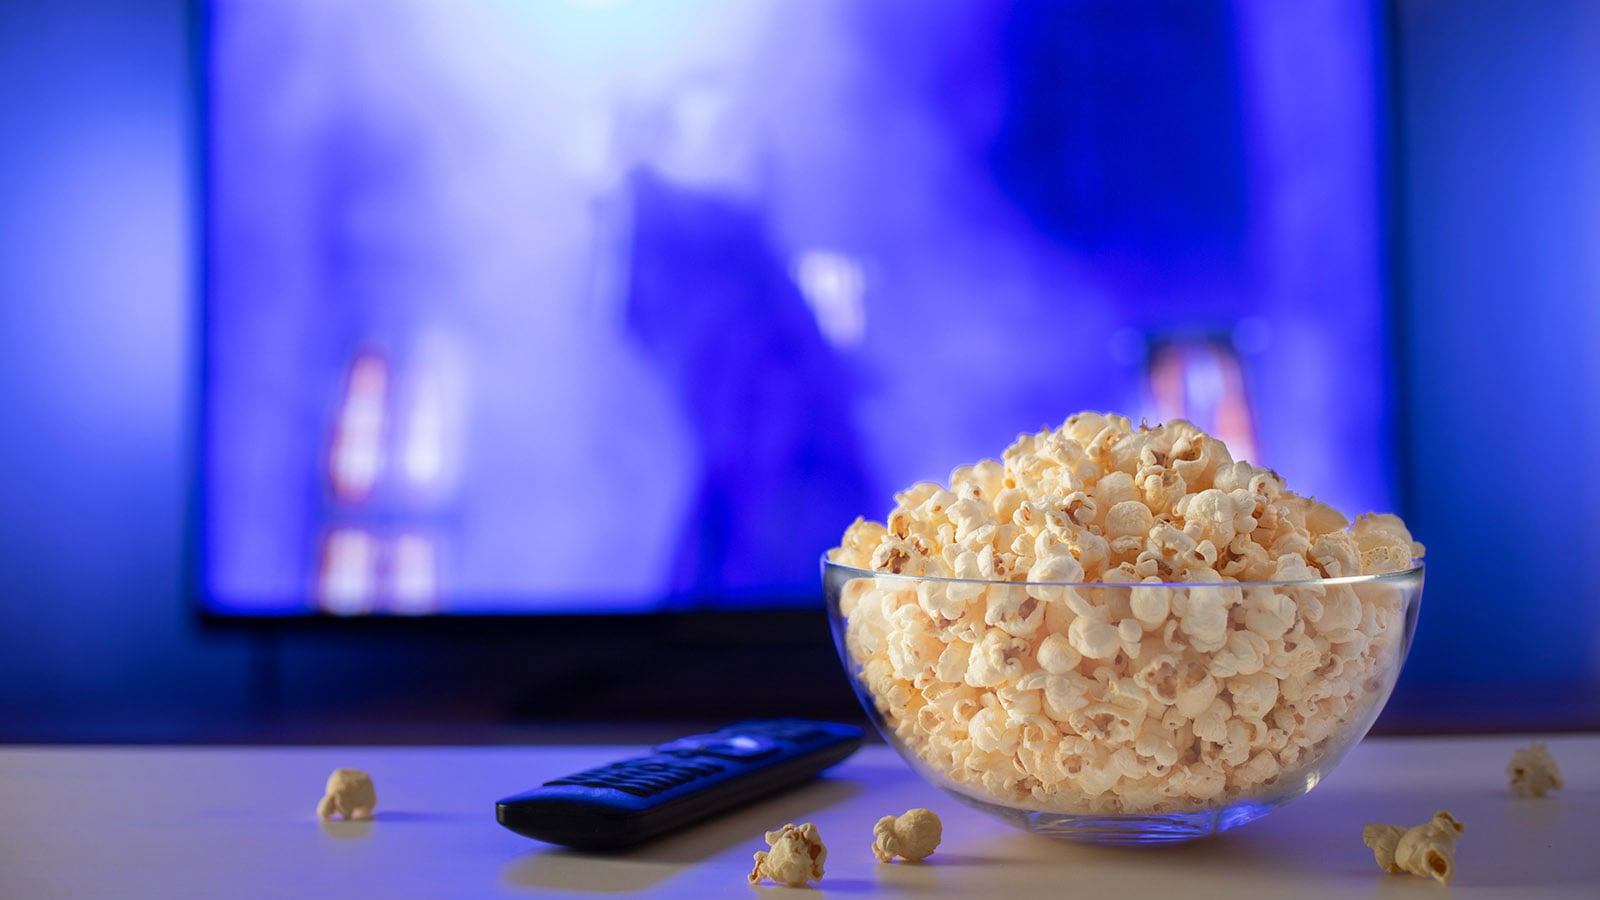 Bowl of popcorn and remote on table as film plays in background.